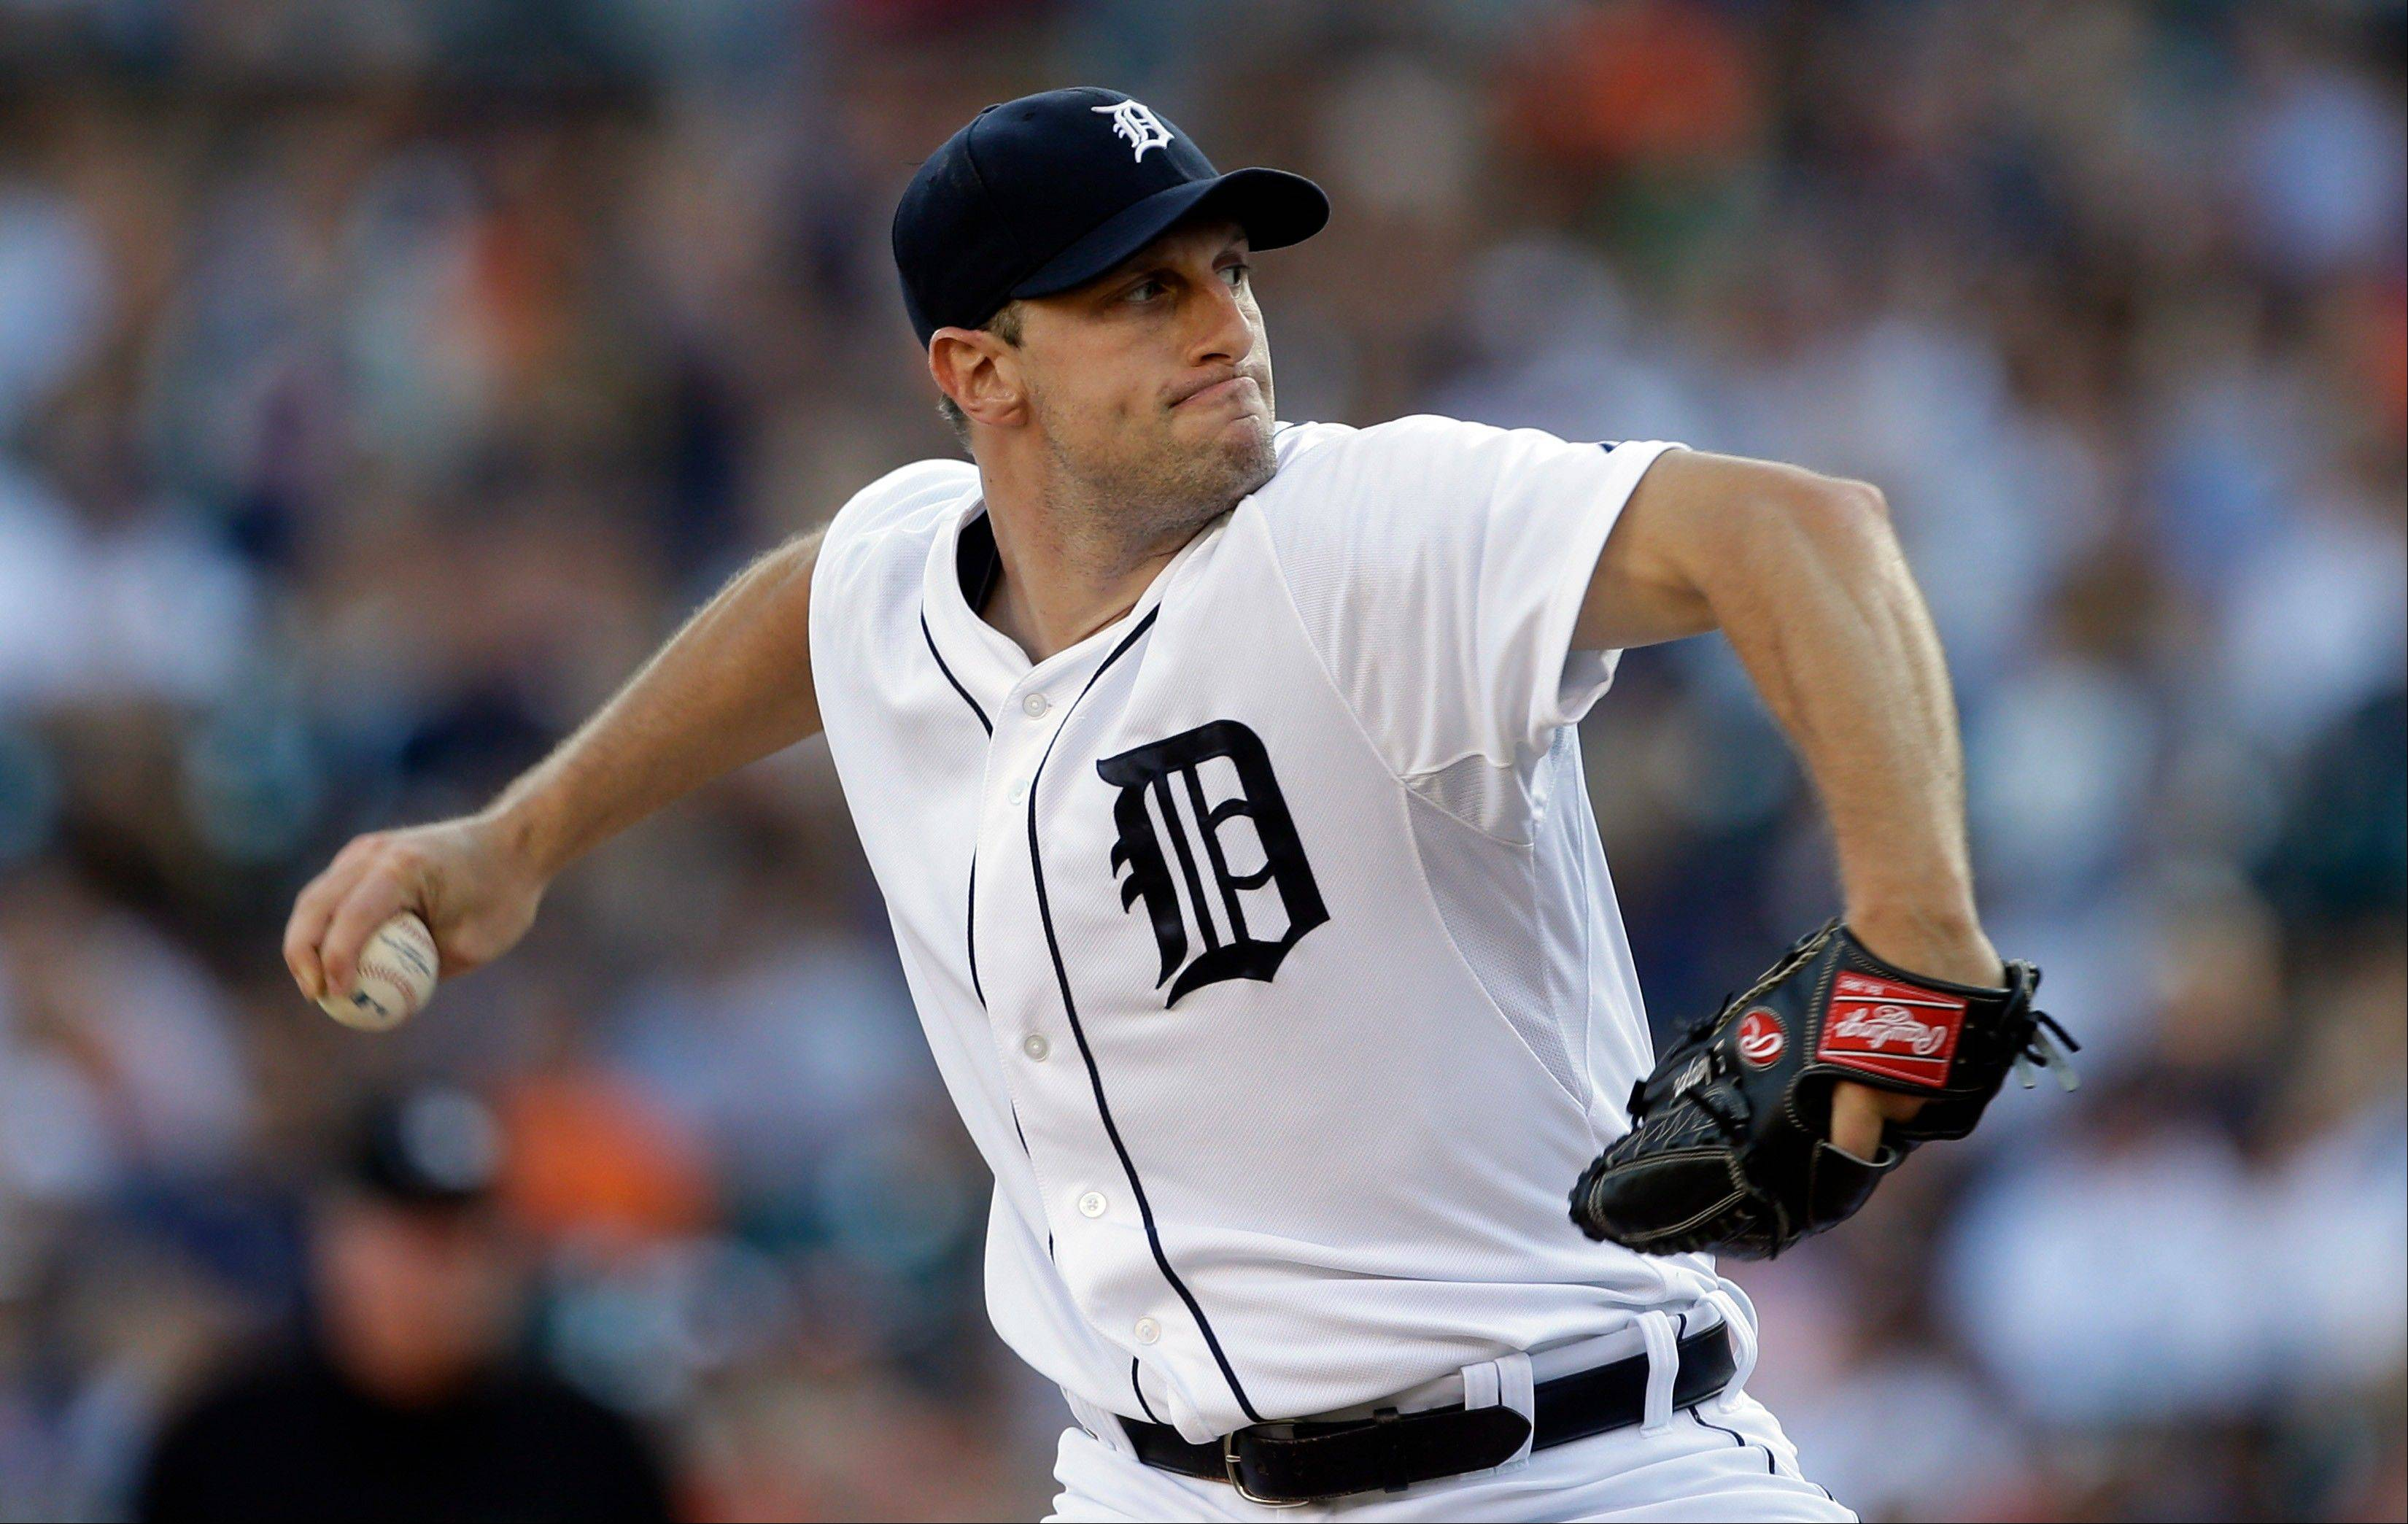 Detroit Tigers starting pitcher Max Scherzer throws Saturday during the first inning against the Texas Rangers in Detroit.